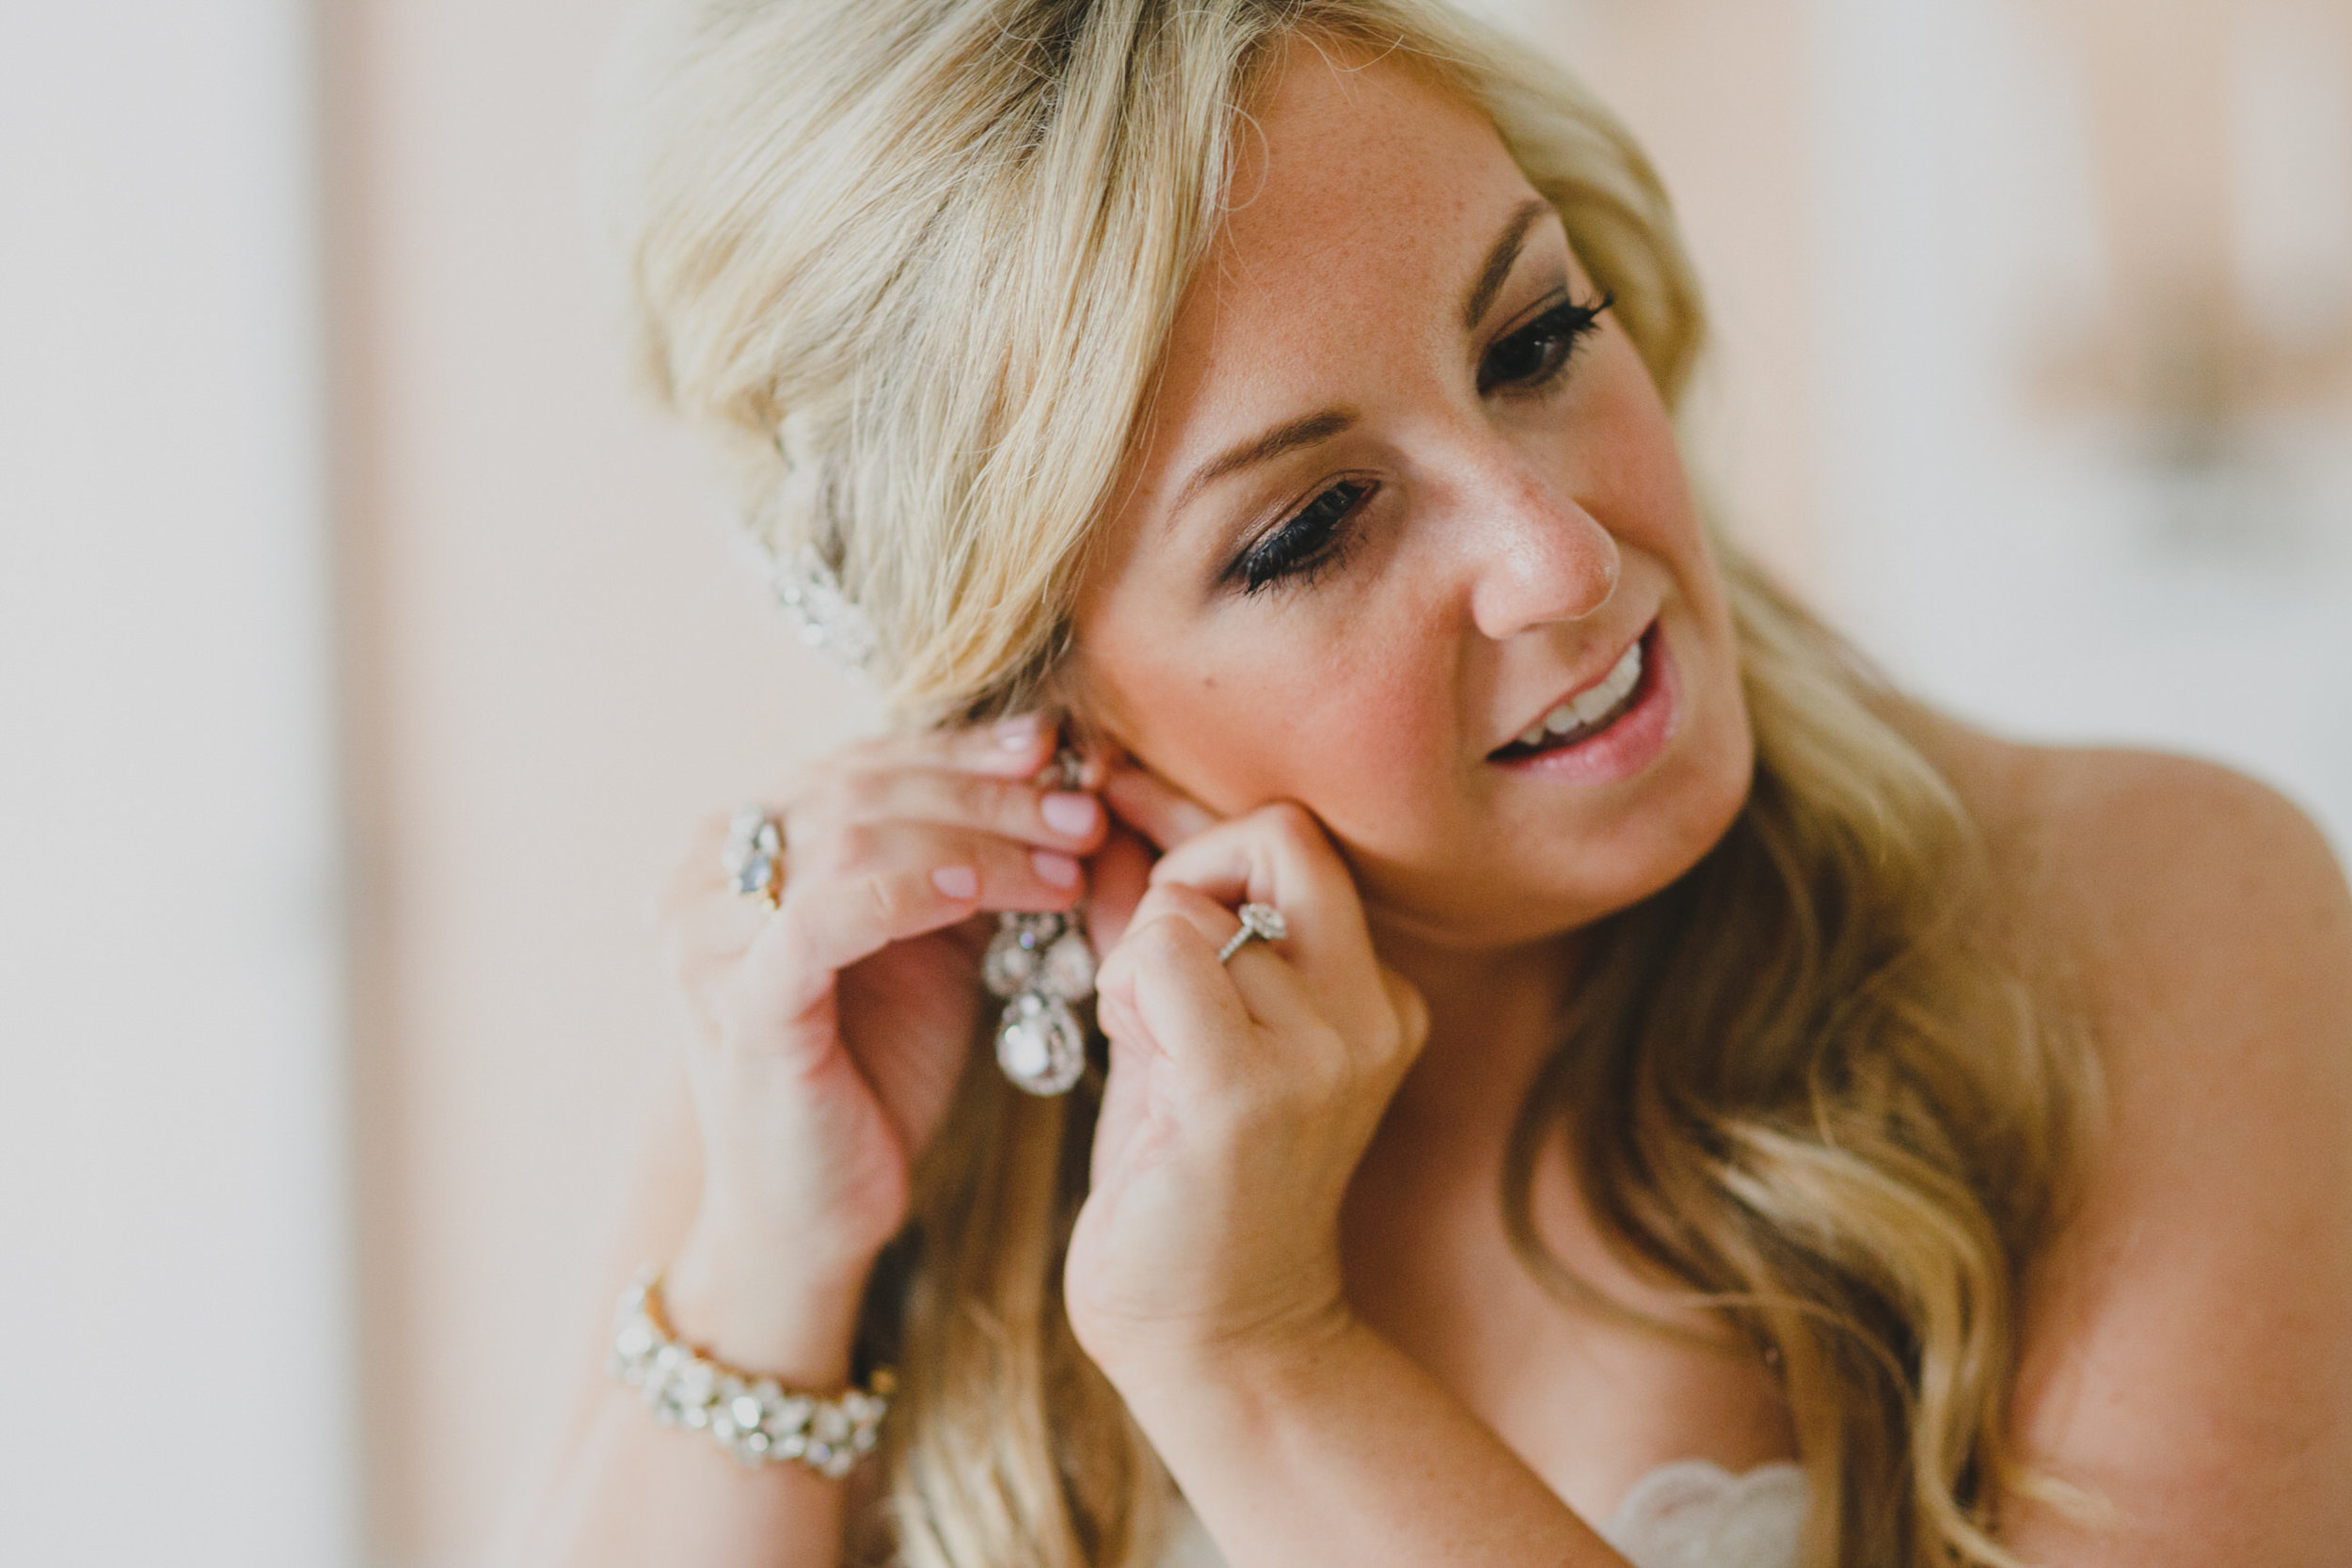 05 Appleford Estate Bride Prep Earrings.jpg